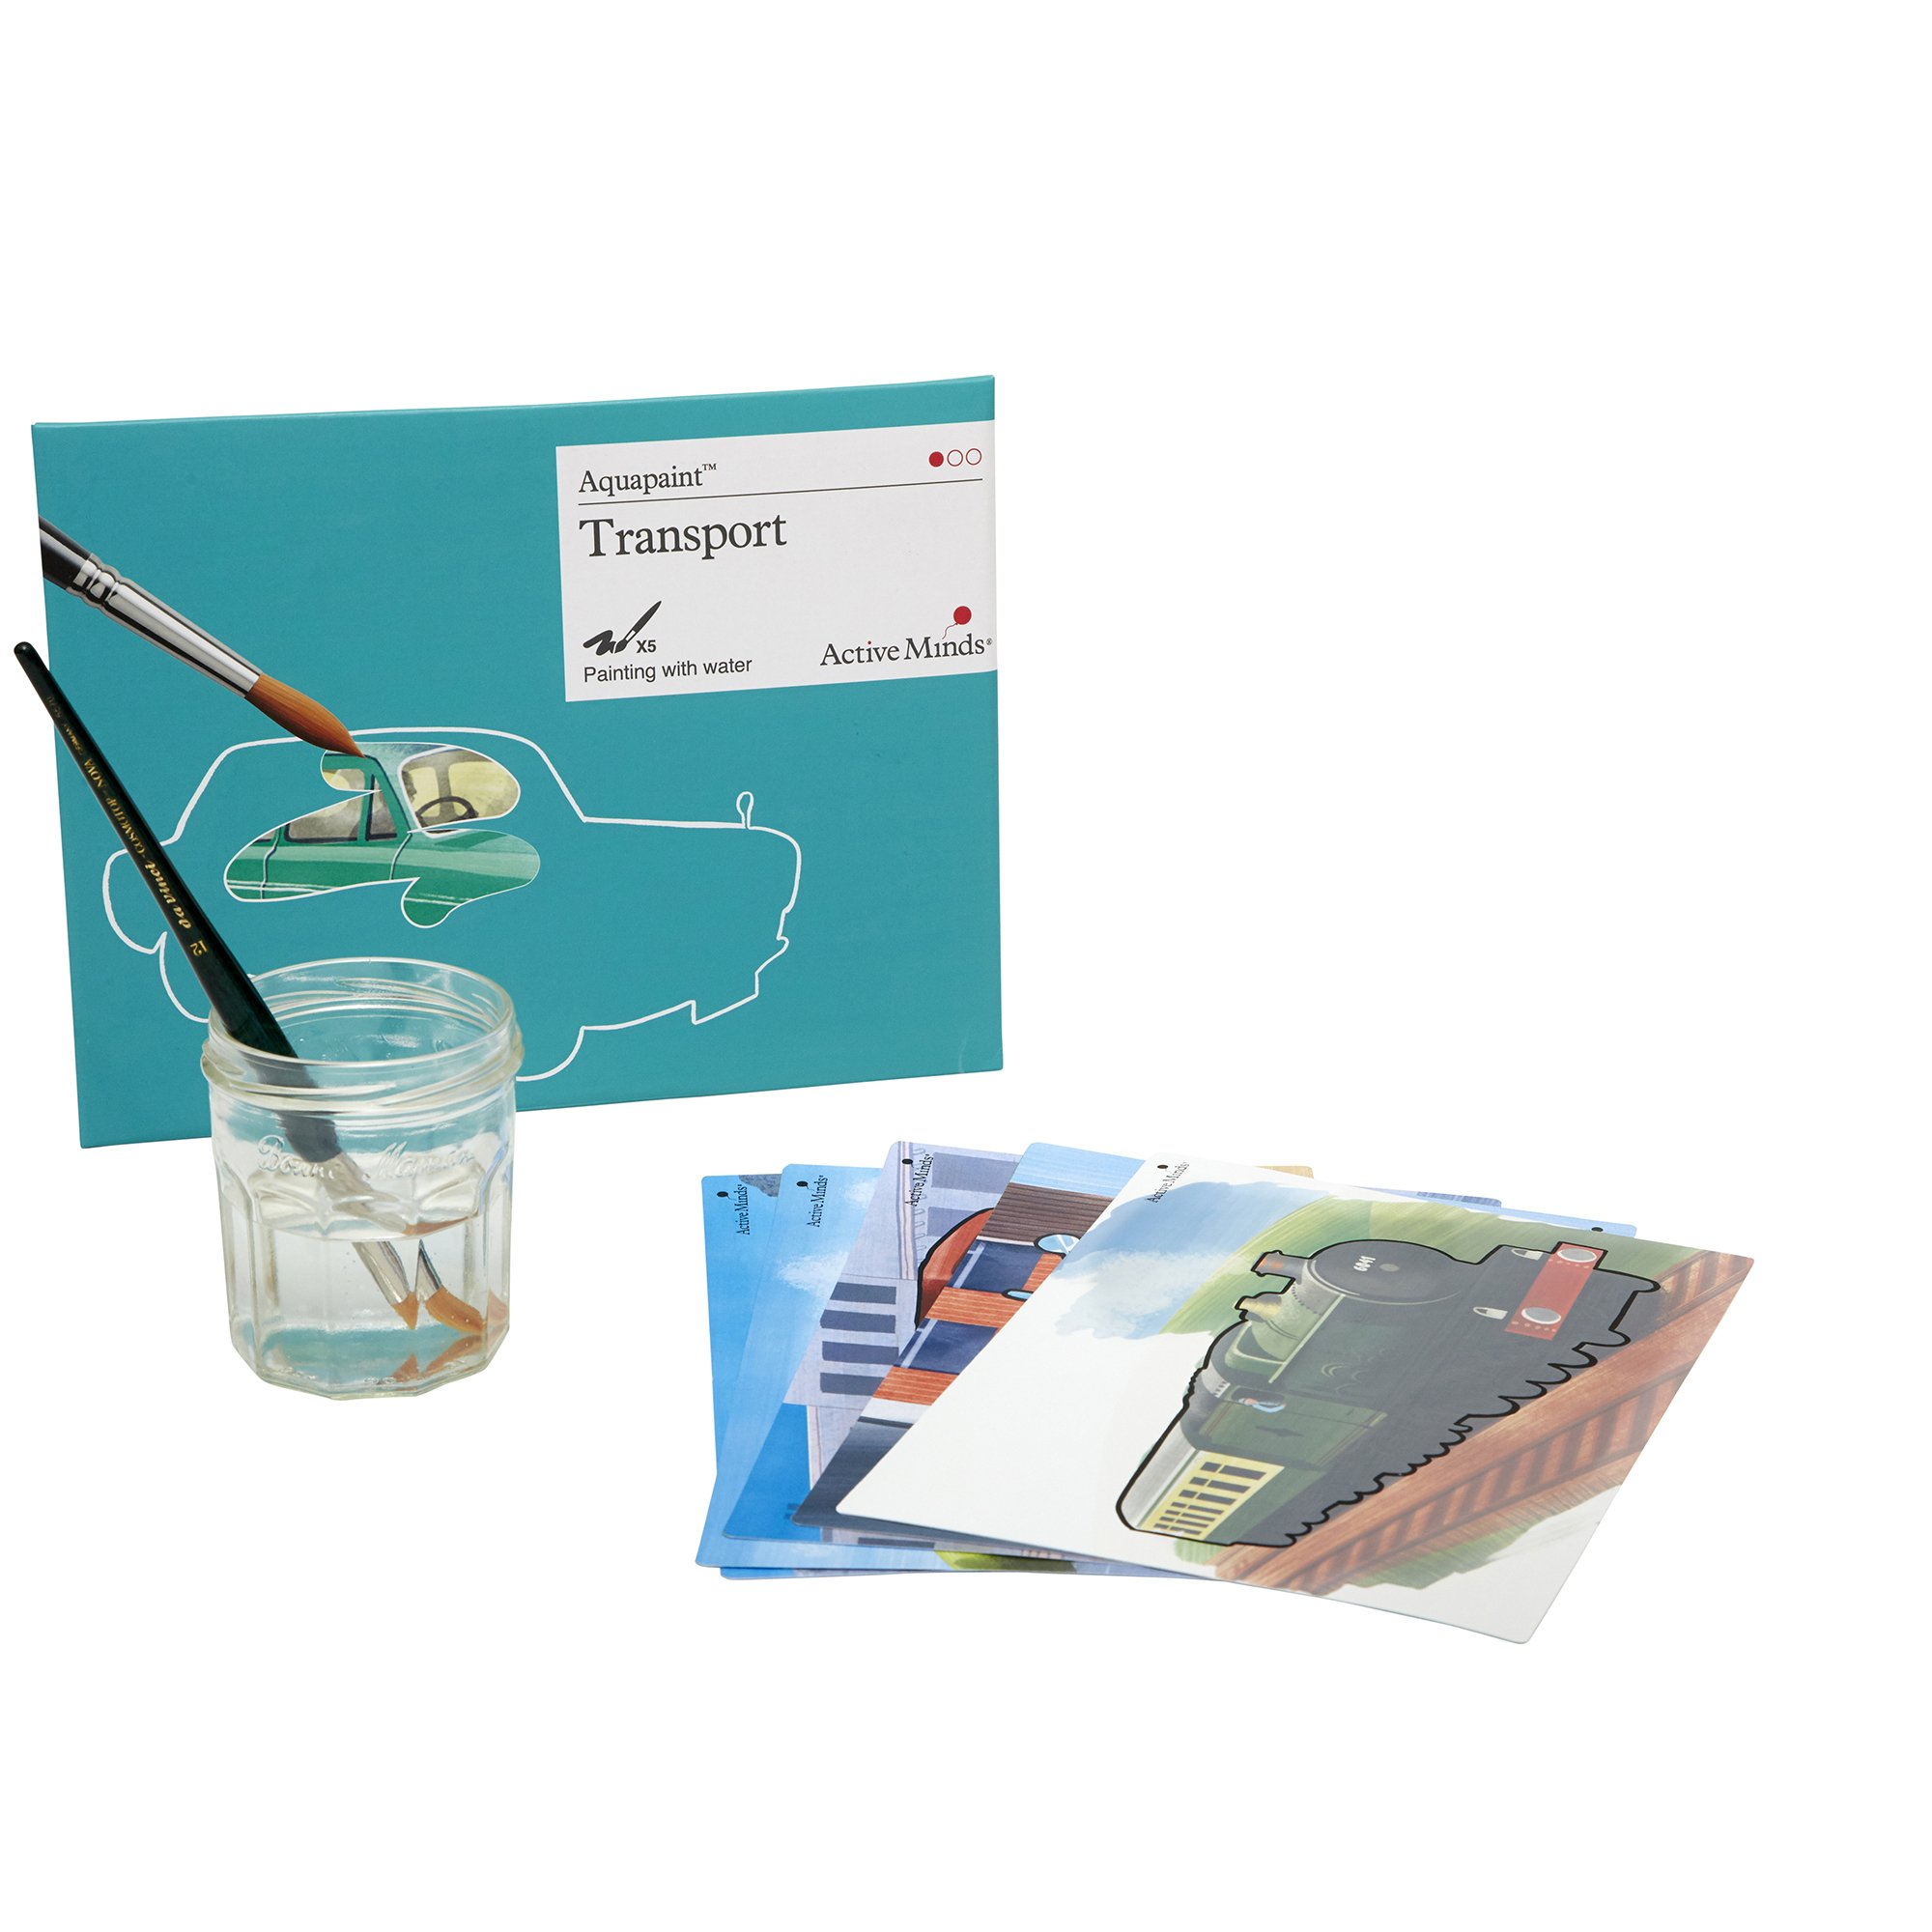 Transport Aquapaint - Reusable Water Painting by Active Minds   Specialist Alzheimer's/Dementia Art Activity w/Five Painting Designs